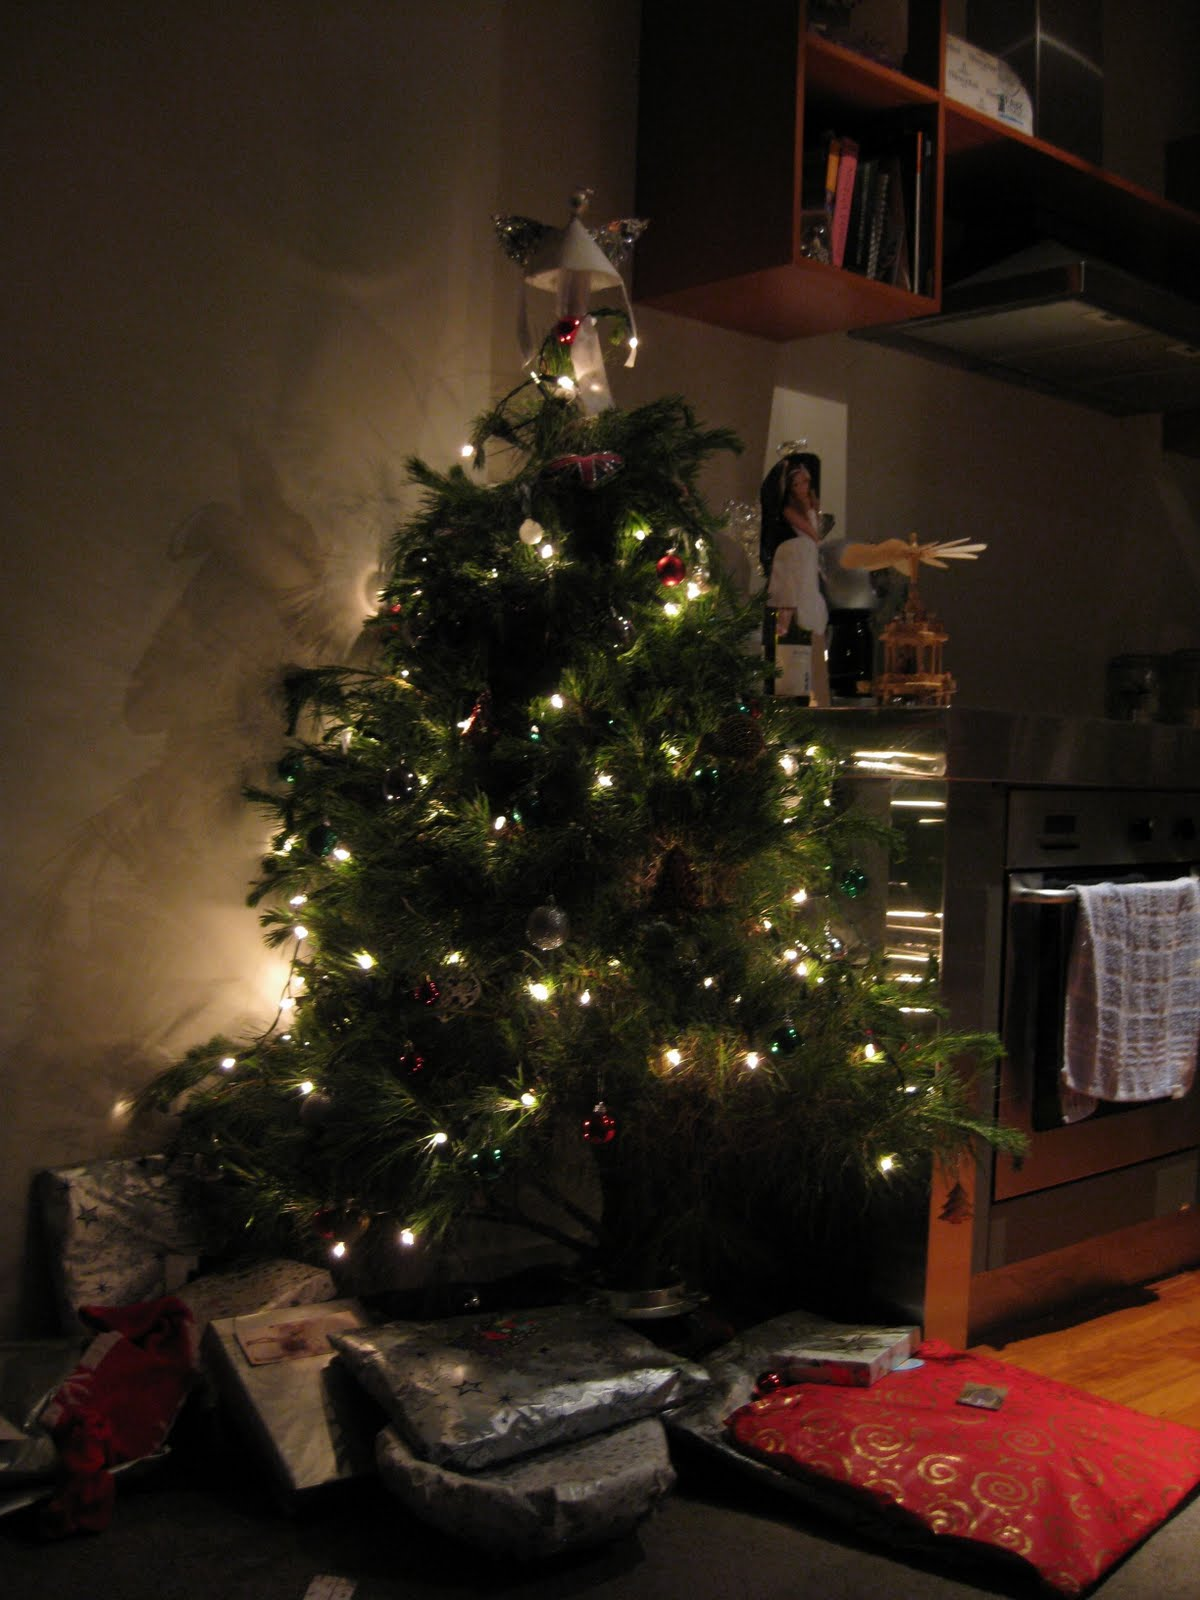 Our Move to New Zealand: Auckland Christmas time